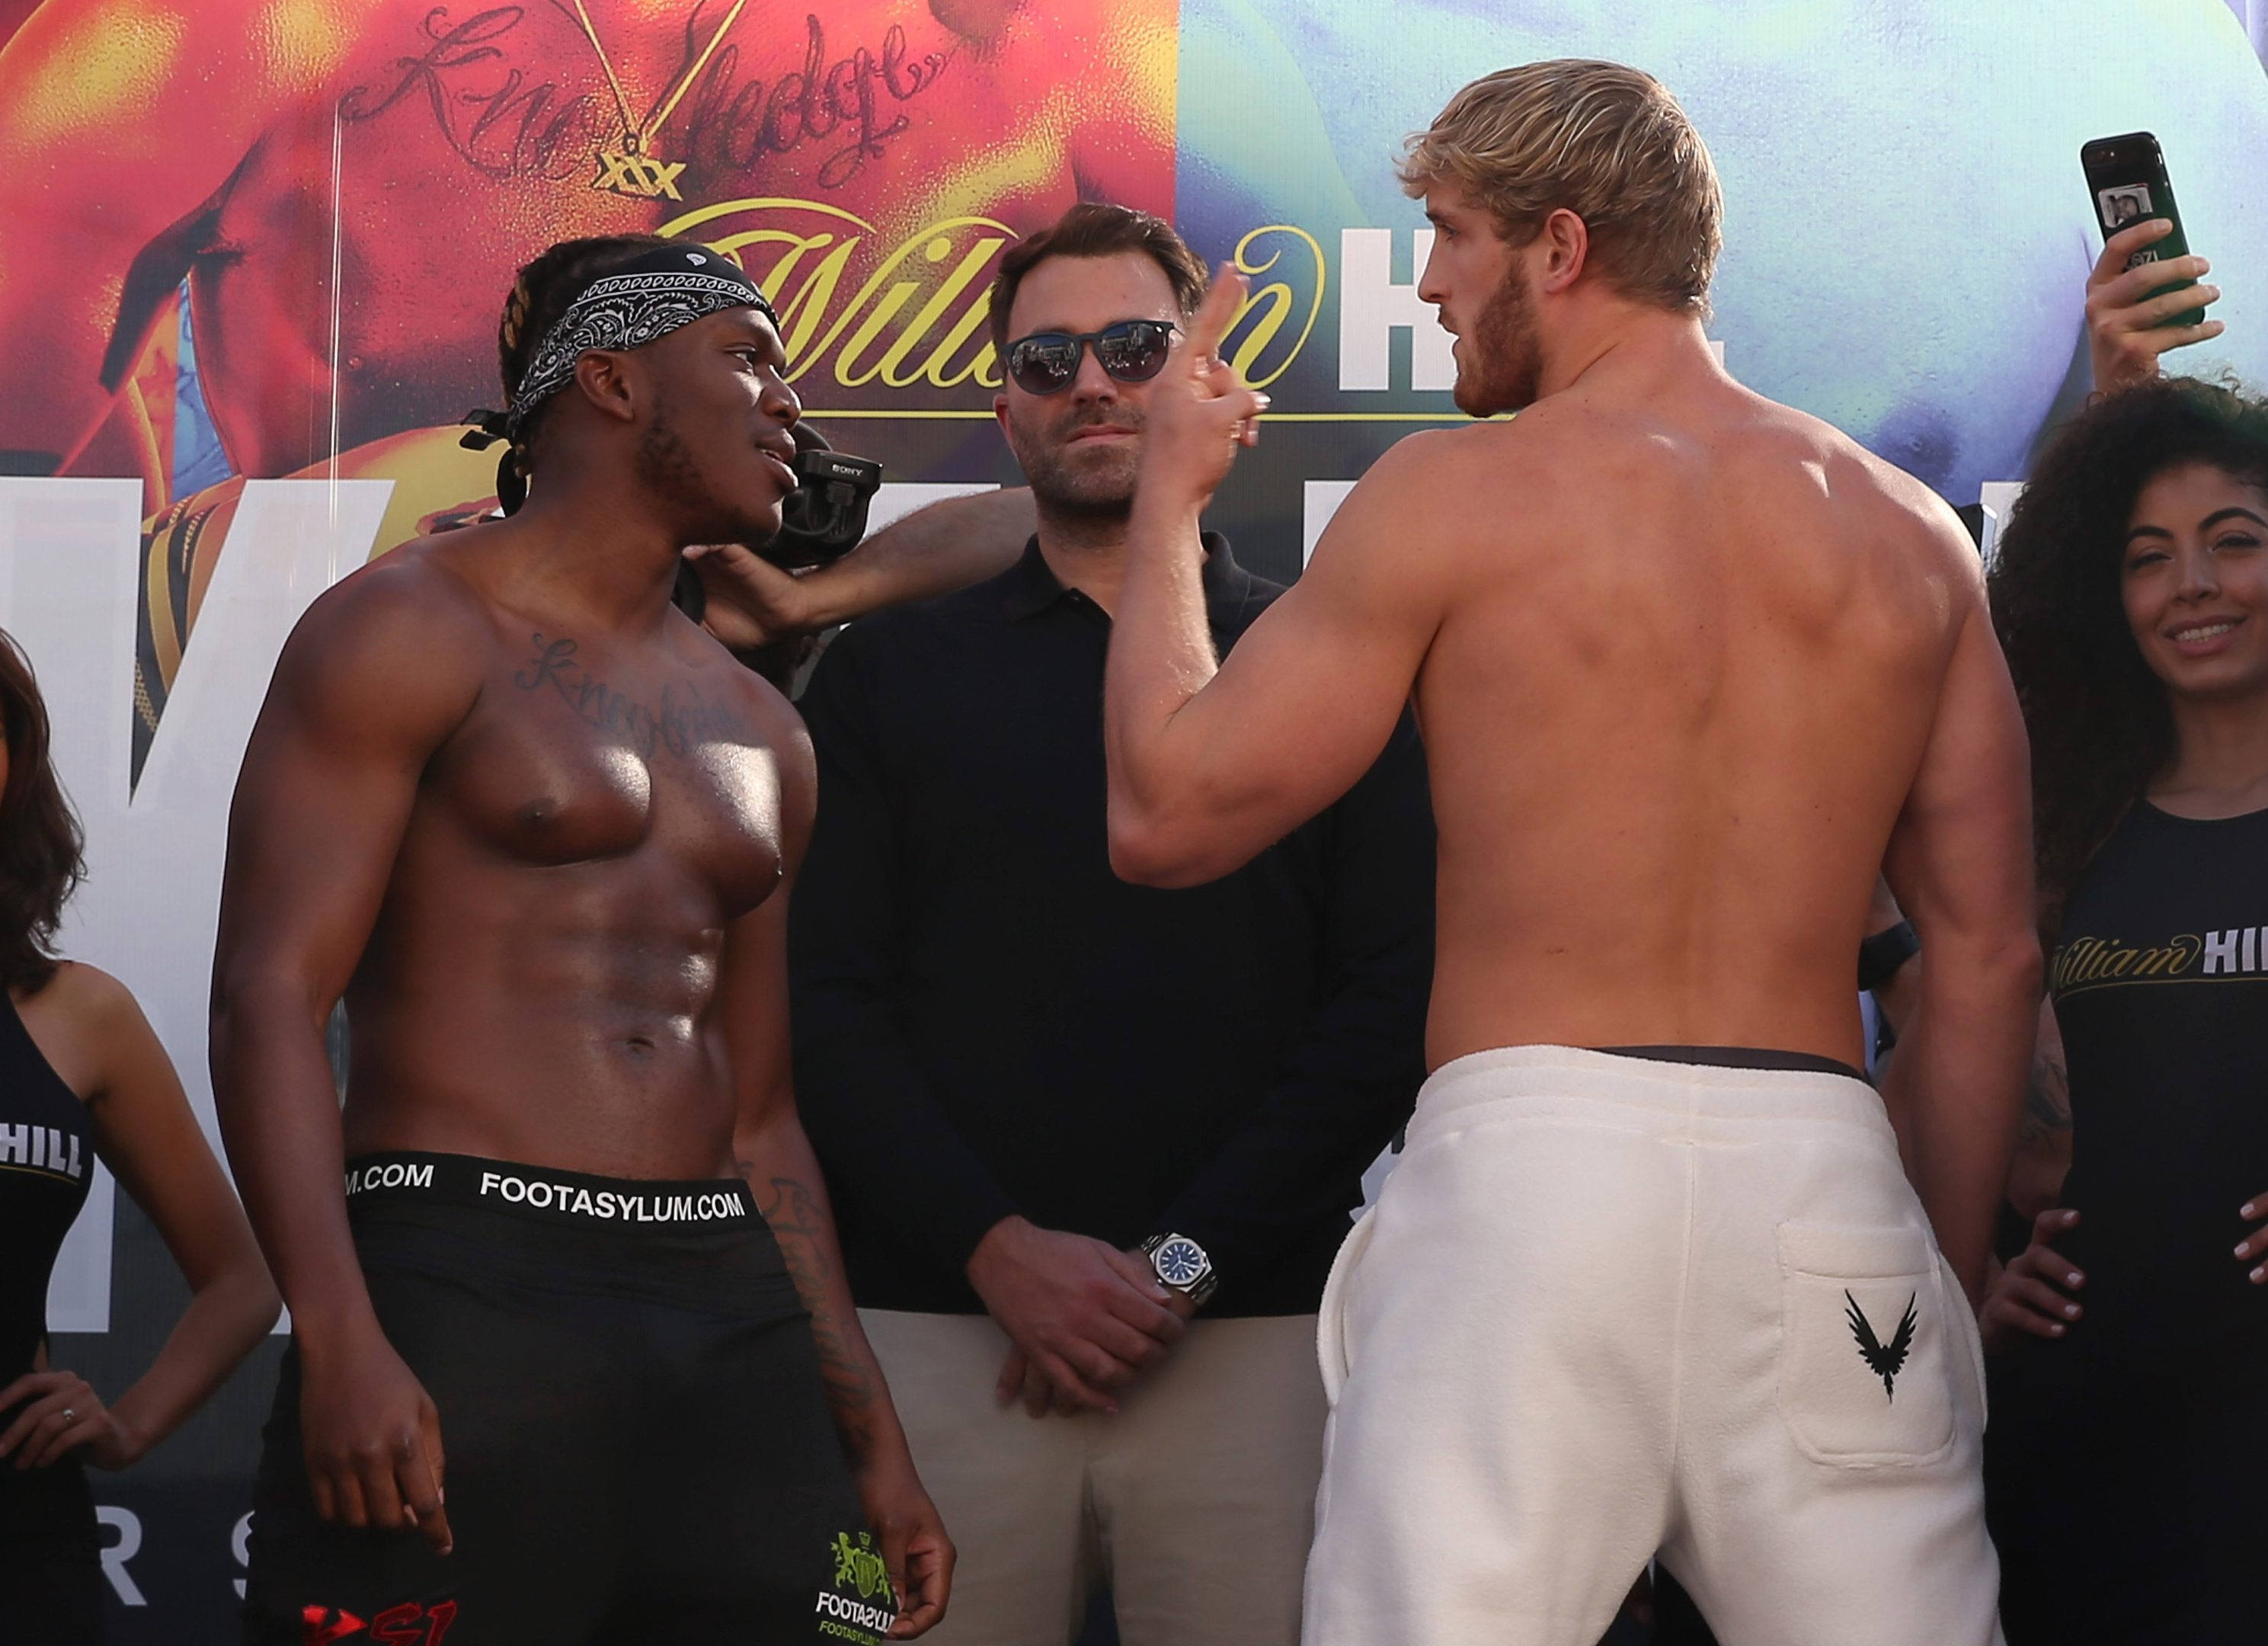 KSI vs Logan Paul 2: Weigh-in descends into chaos as trainers Shannon Briggs and Viddal Riley clash ahead of YouTube fight